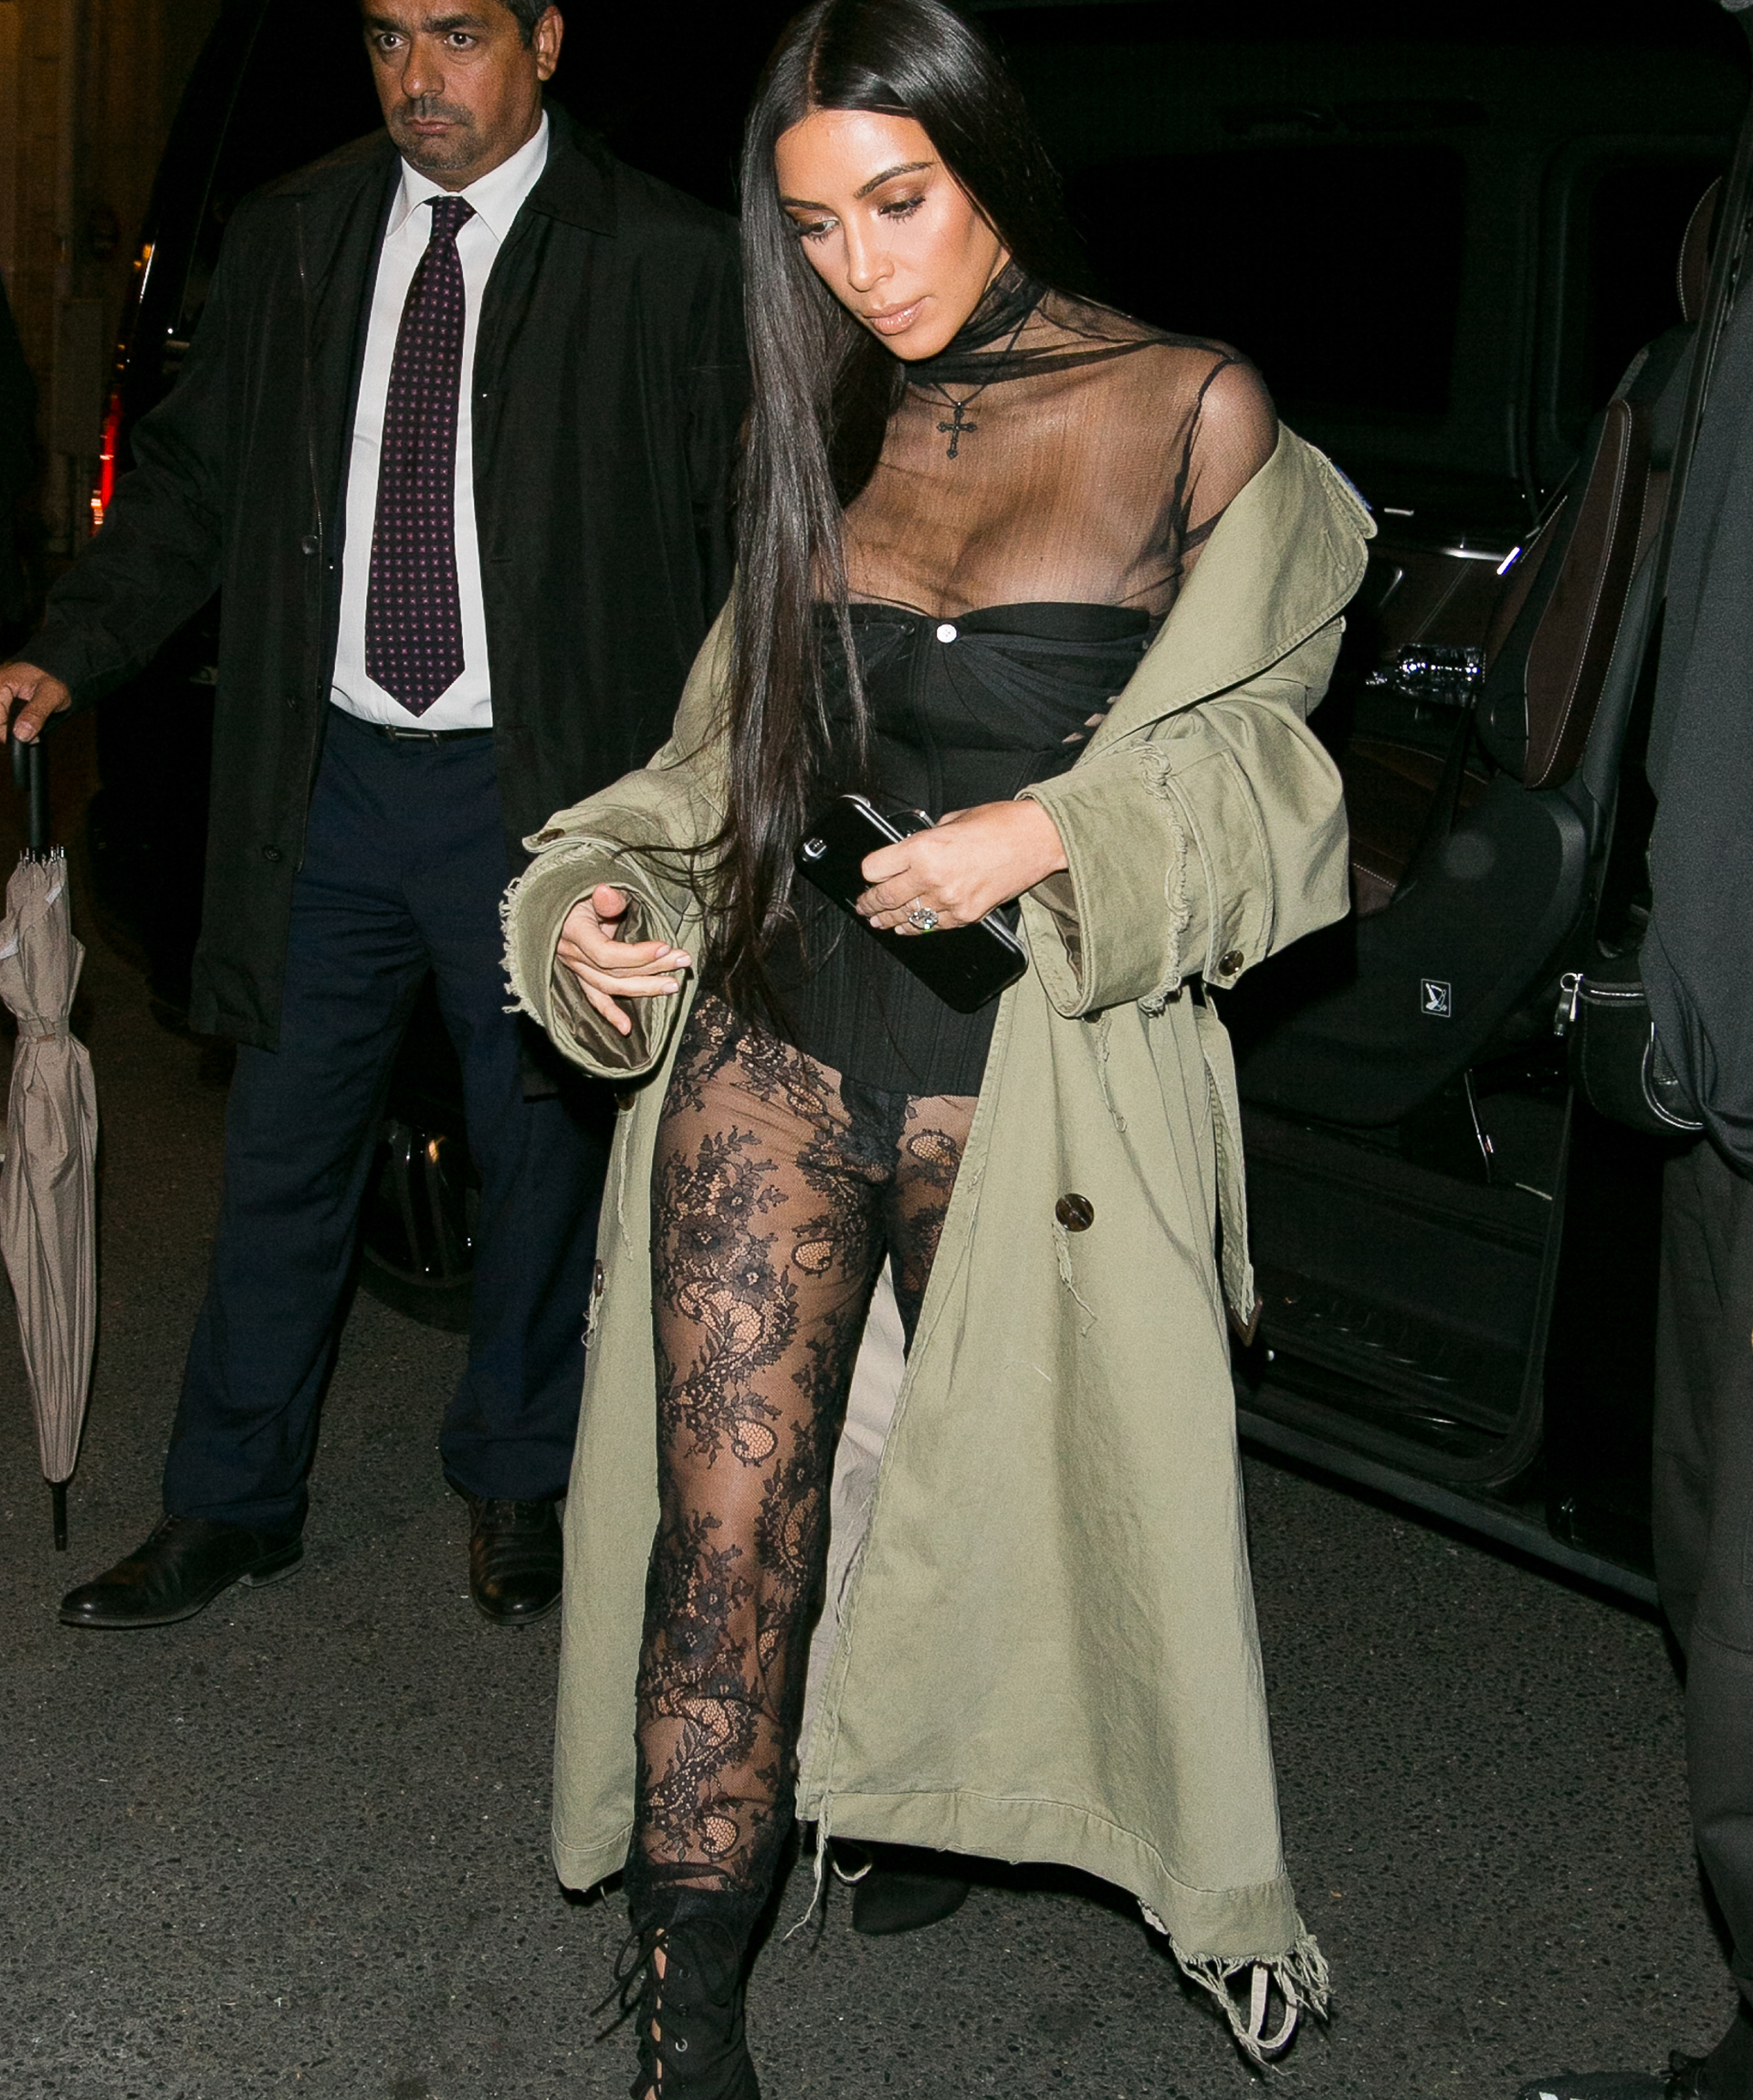 Kim Kardashian Spends the Day Shopping in Paris With Naomi Campbell